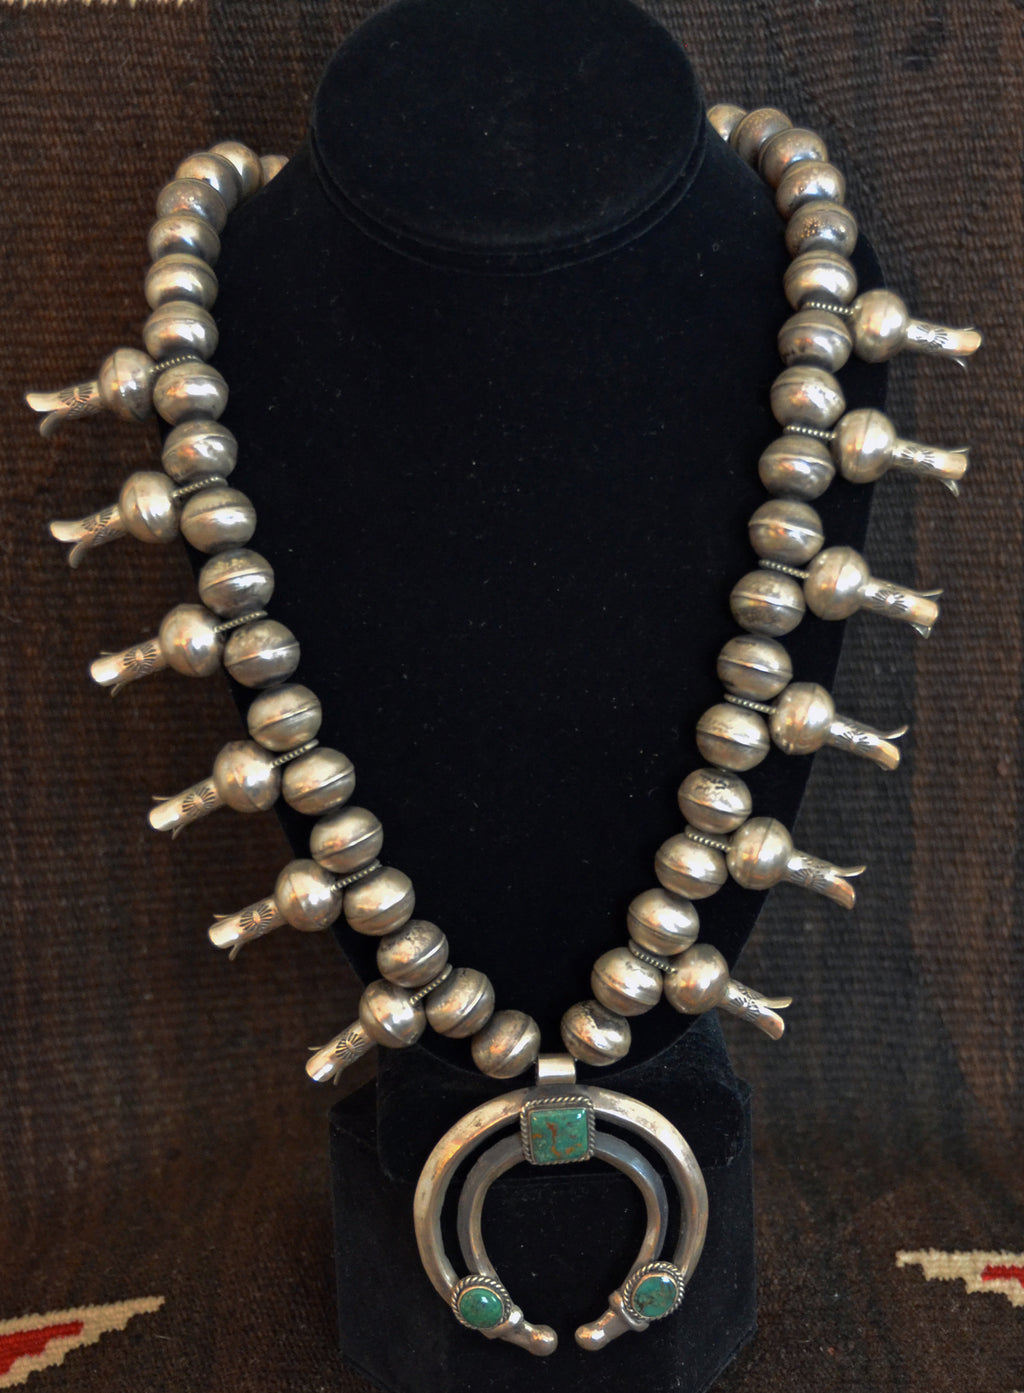 Native American Jewelry : Navajo: Squash Blossom Necklace : Chris Hale : NAJ-N23 - Getzwiller's Nizhoni Ranch Gallery